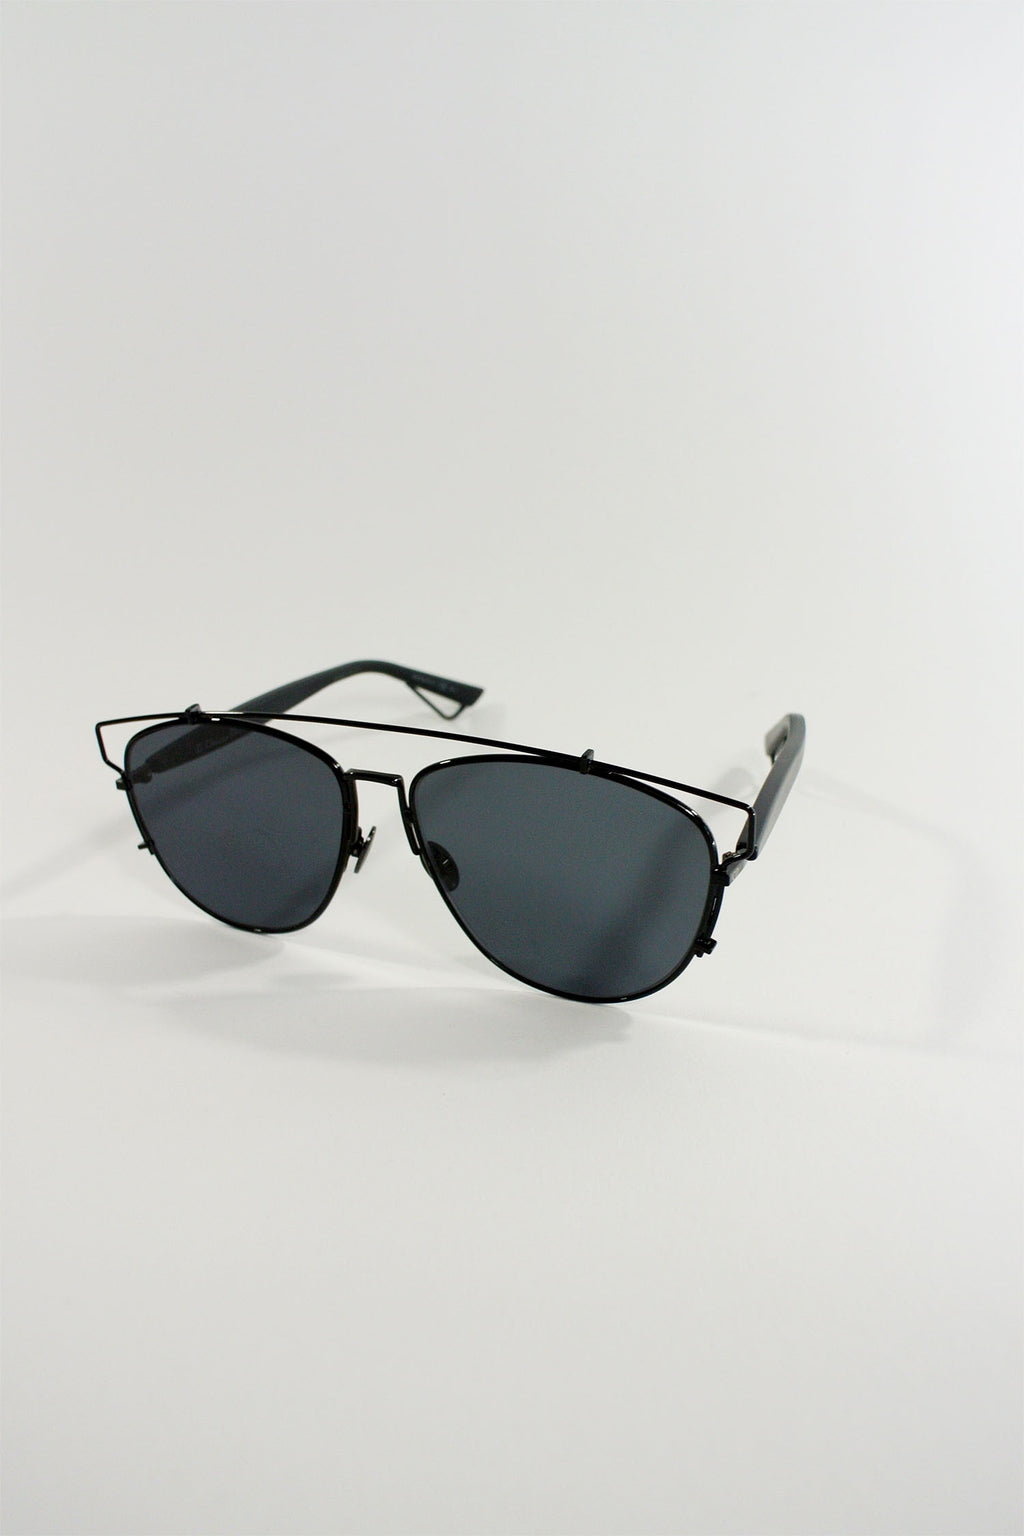 Christian Dior Technologic Sunglasses